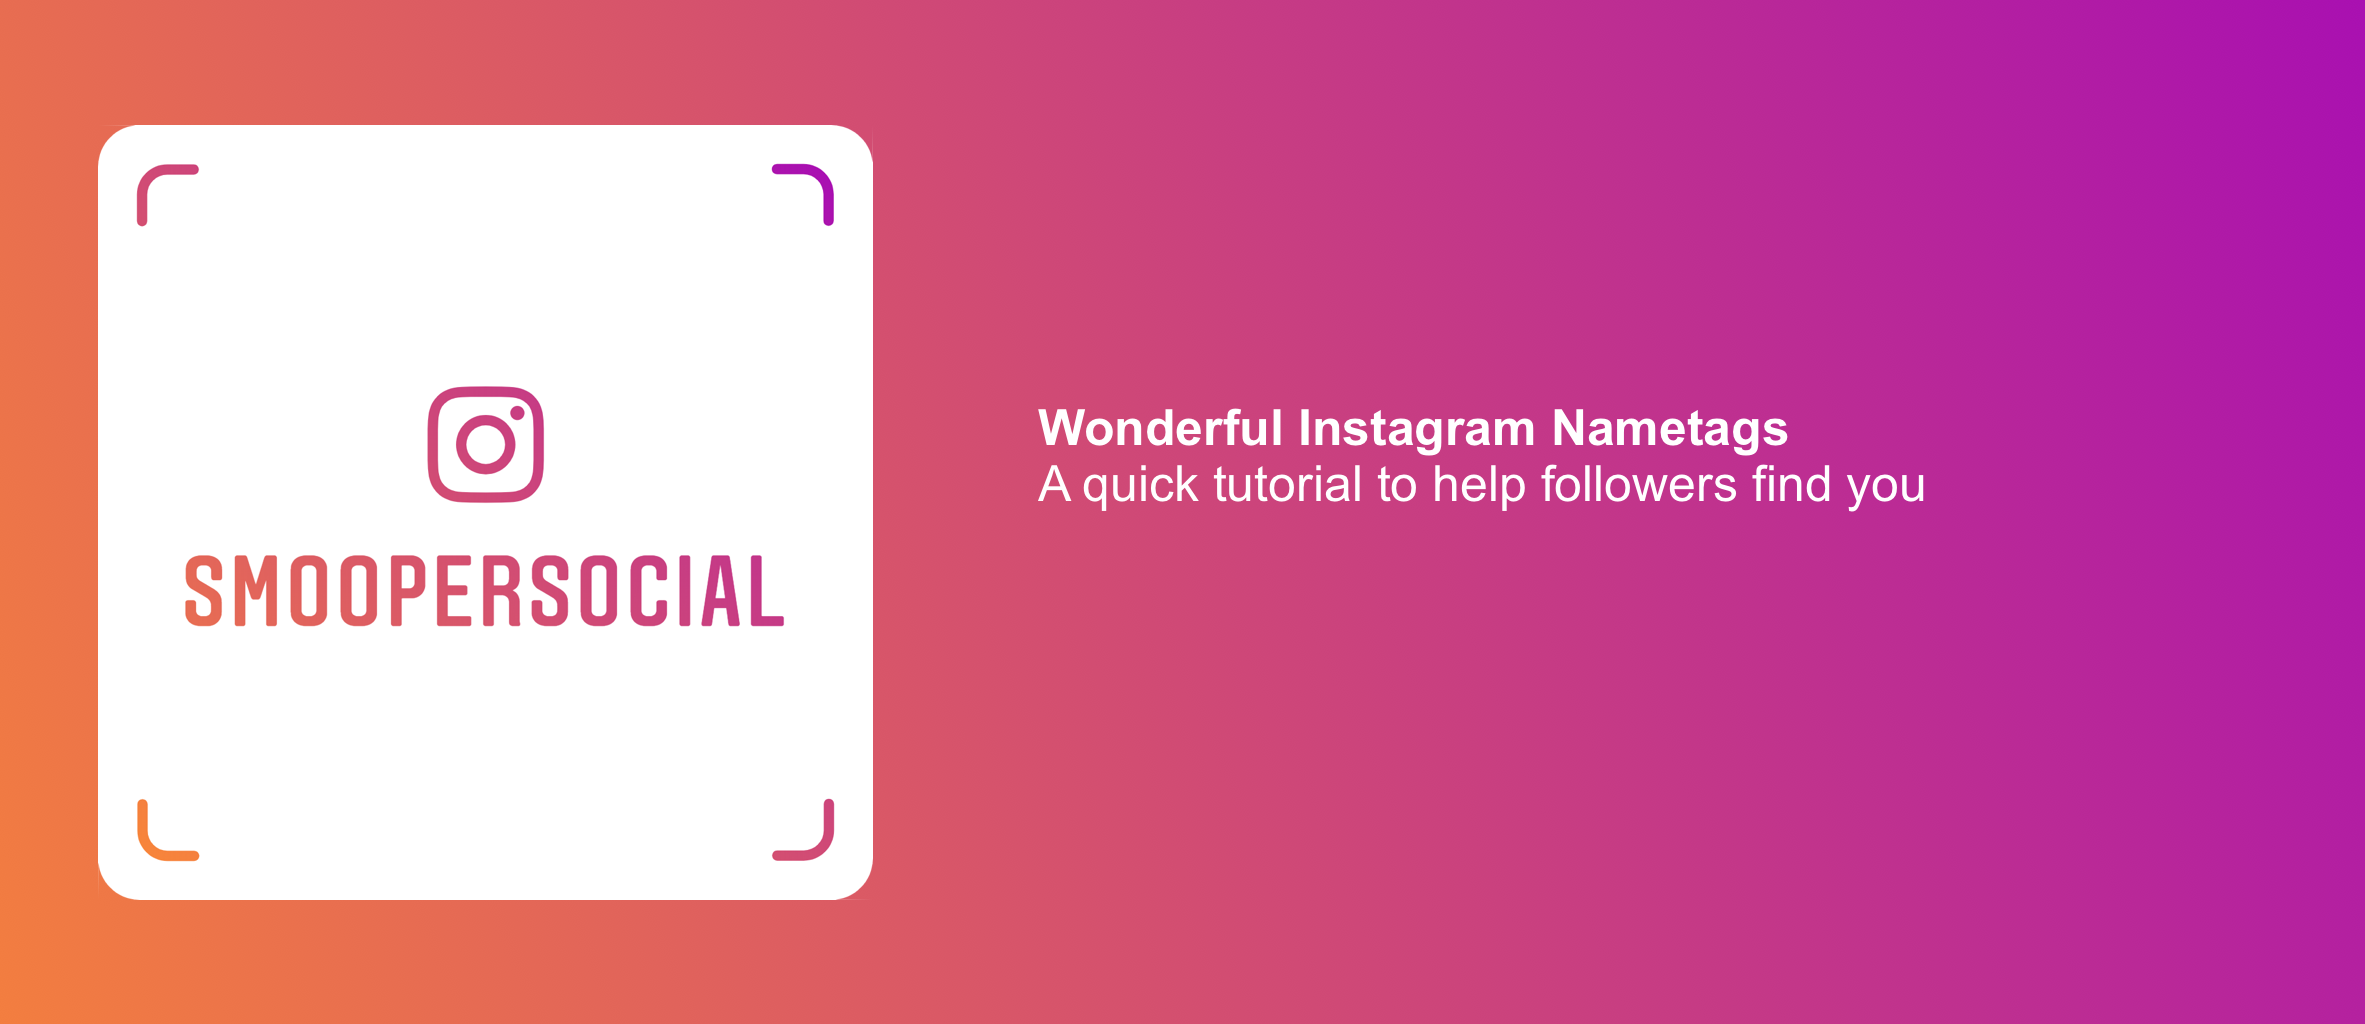 Why and how to use Instagram Nametags for your promotion